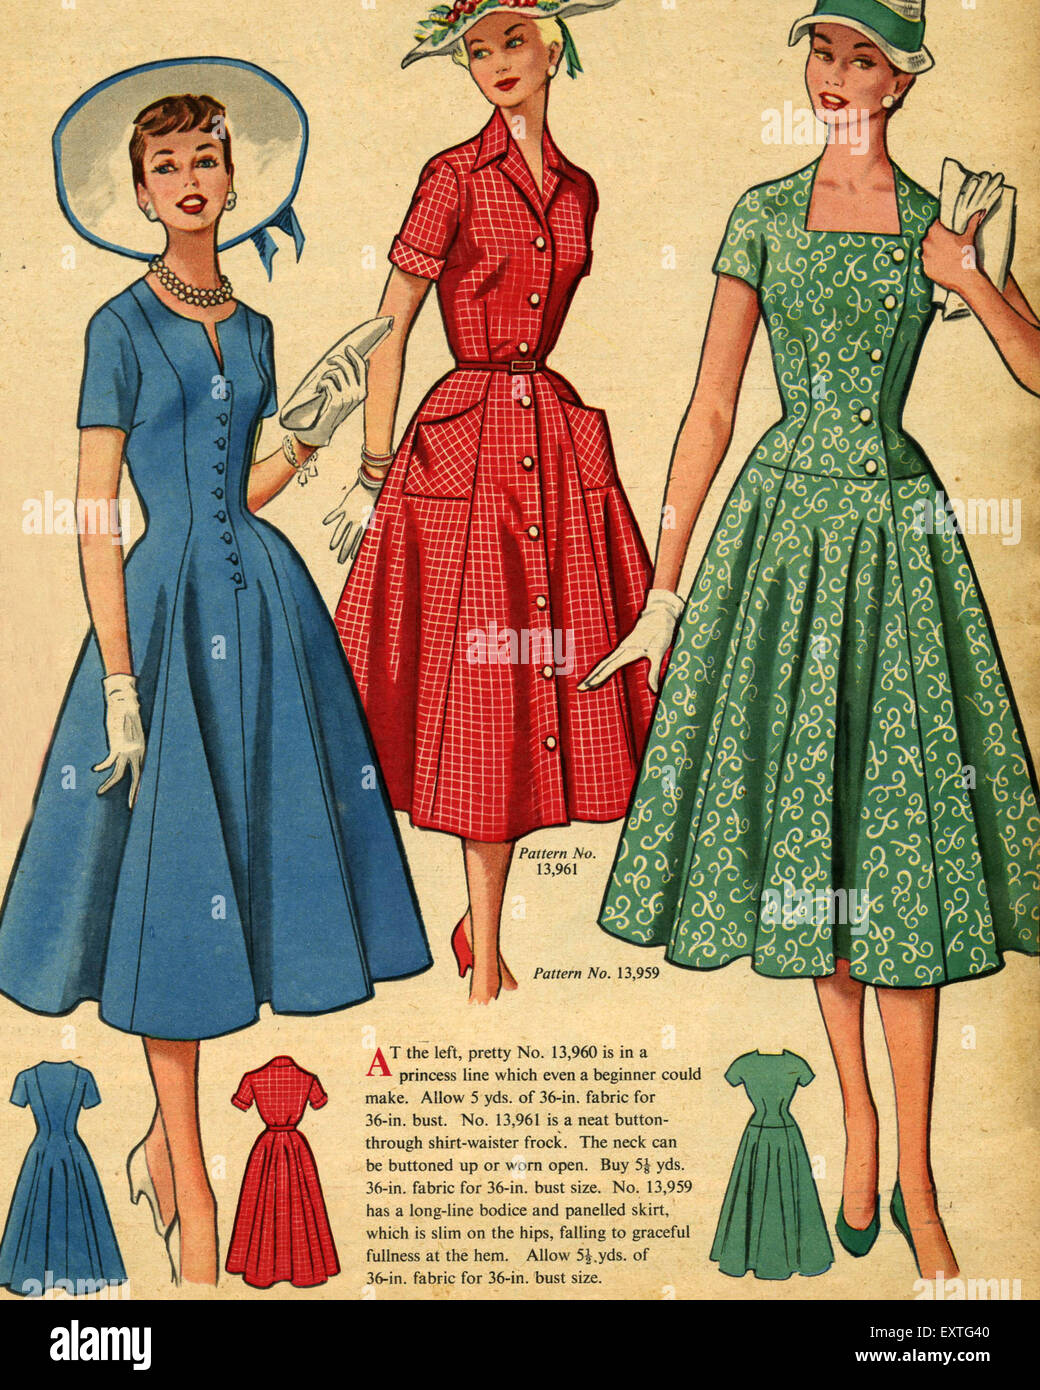 1950s Uk Fashion Magazine Plate Stock Photos & 1950s Uk ...